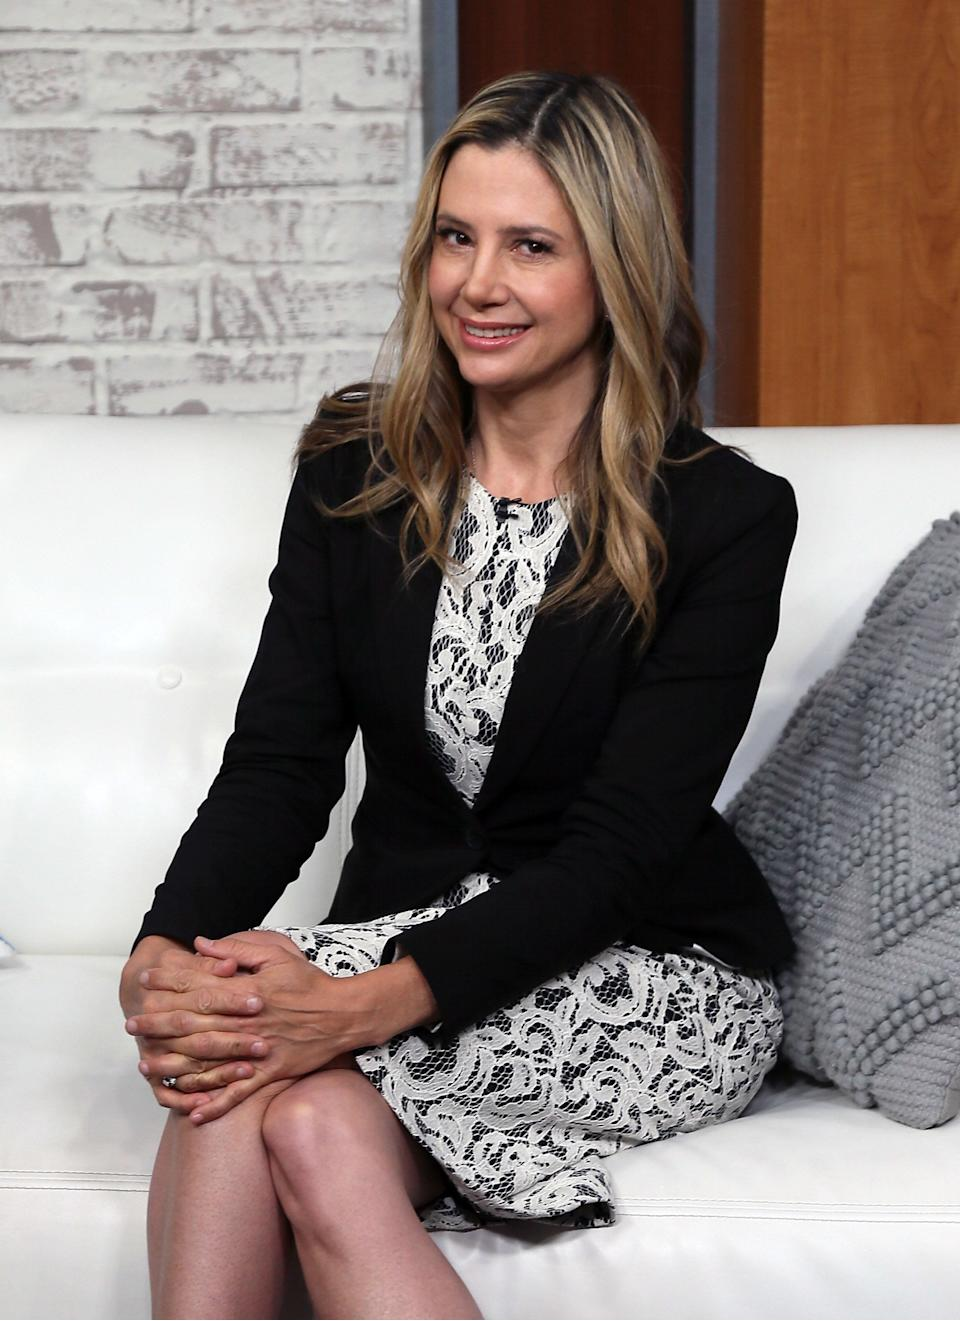 """In February 2017, an appeals court decided against Donald Trump's proposed travel ban.<br /><br />Actress Mira Sorvino tweeted after court ruling, saying,""""Thank God!!And TY to all the judges, and lawyers and citizens who protested! This is our America! #nomuslimban #lovenothatemakesamericagreat."""""""